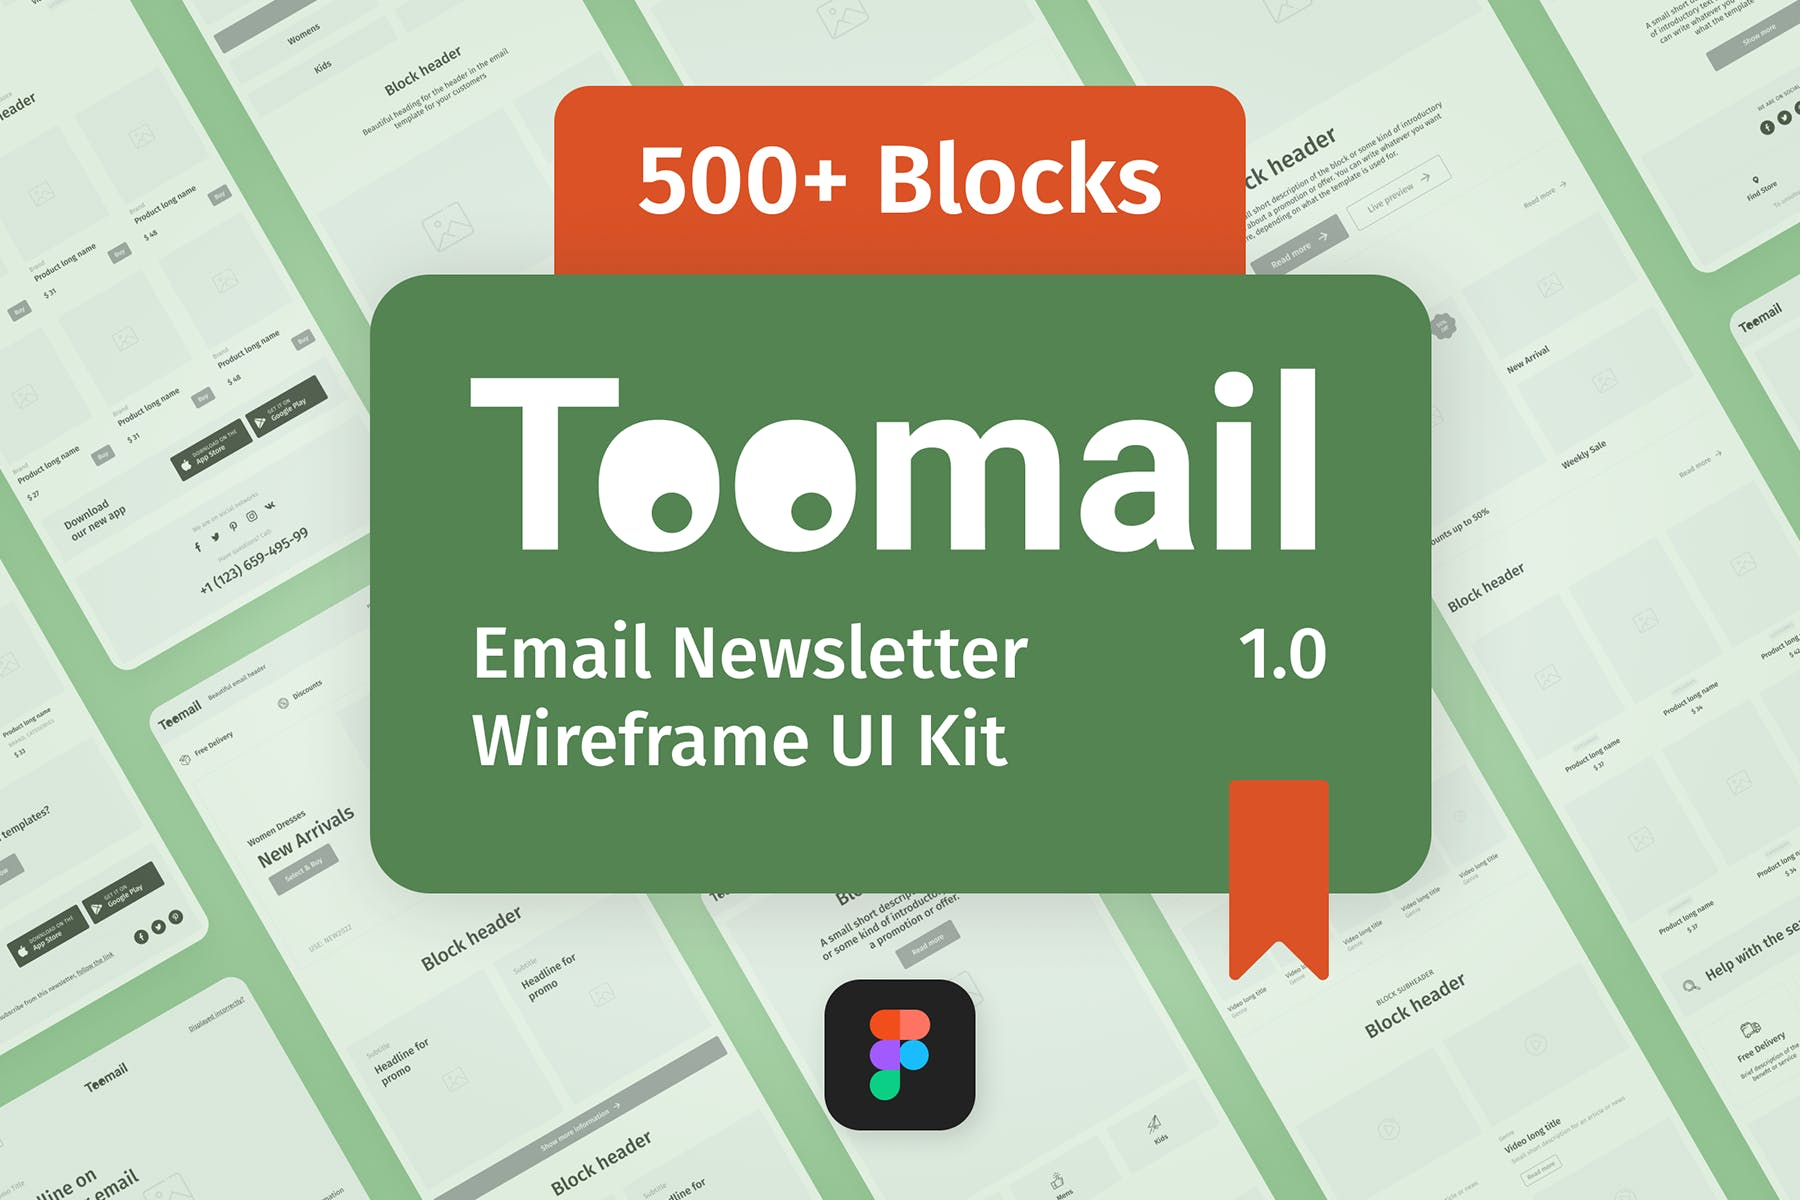 Toomail - Email Newsletter Wireframe UI Kit